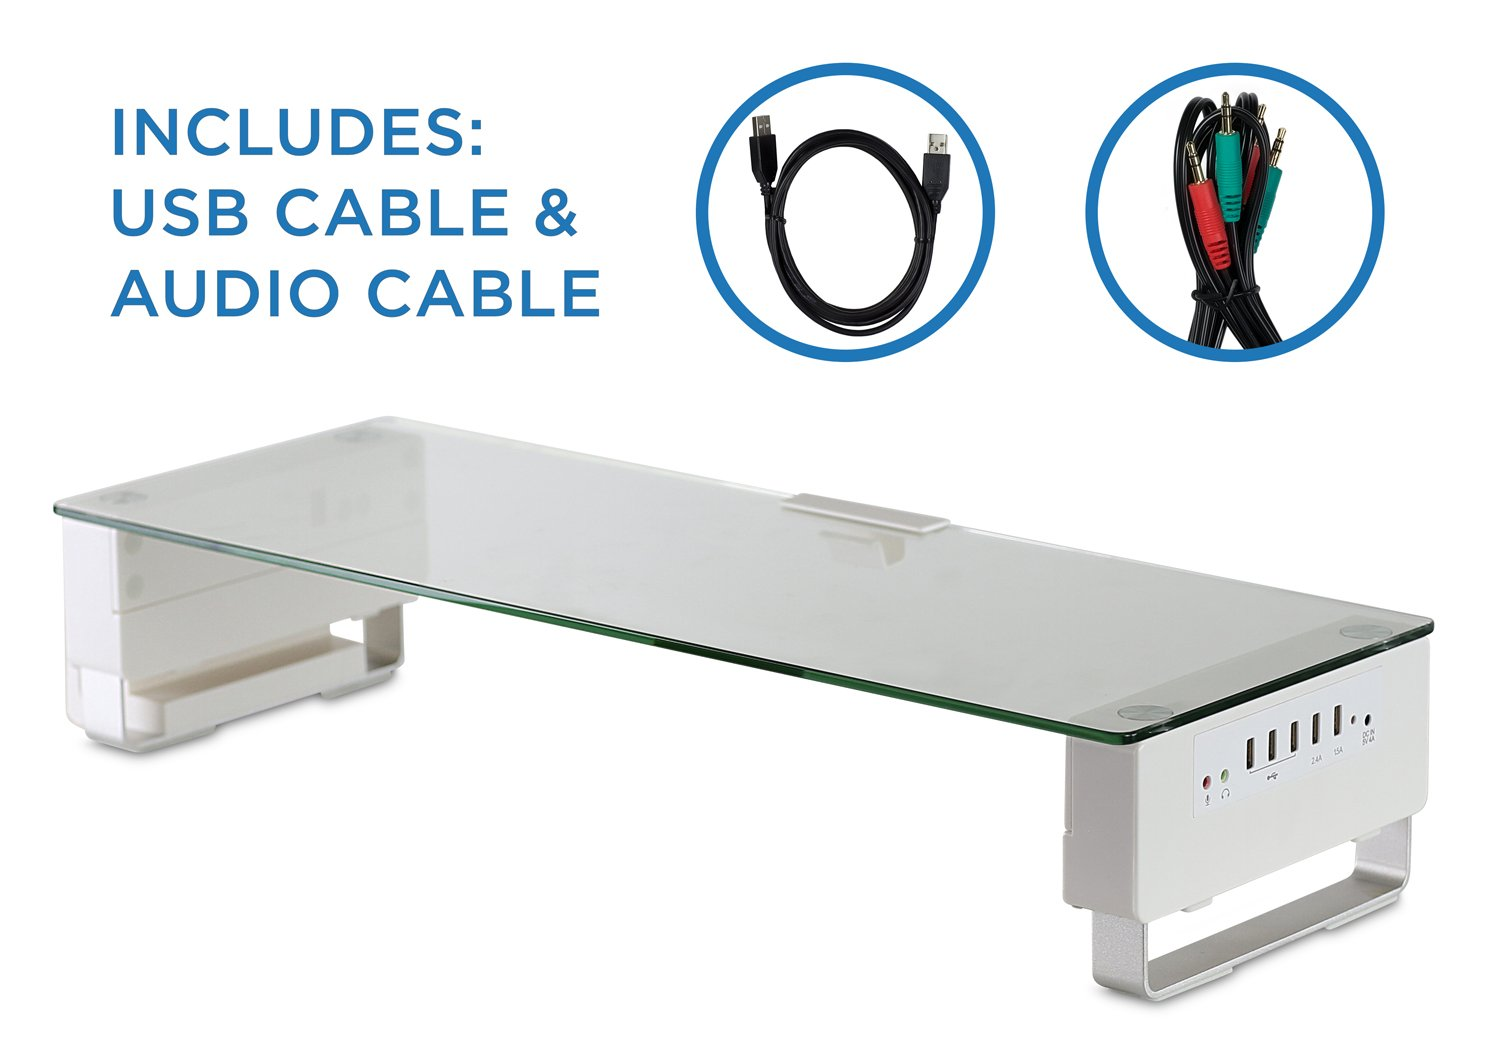 Computer Monitor Stand with 5 USB Ports Desktop Riser, Clear Tempered Glass, Fits 24, 27, 30, 32 Inch Screens, 66 Lbs Capacity